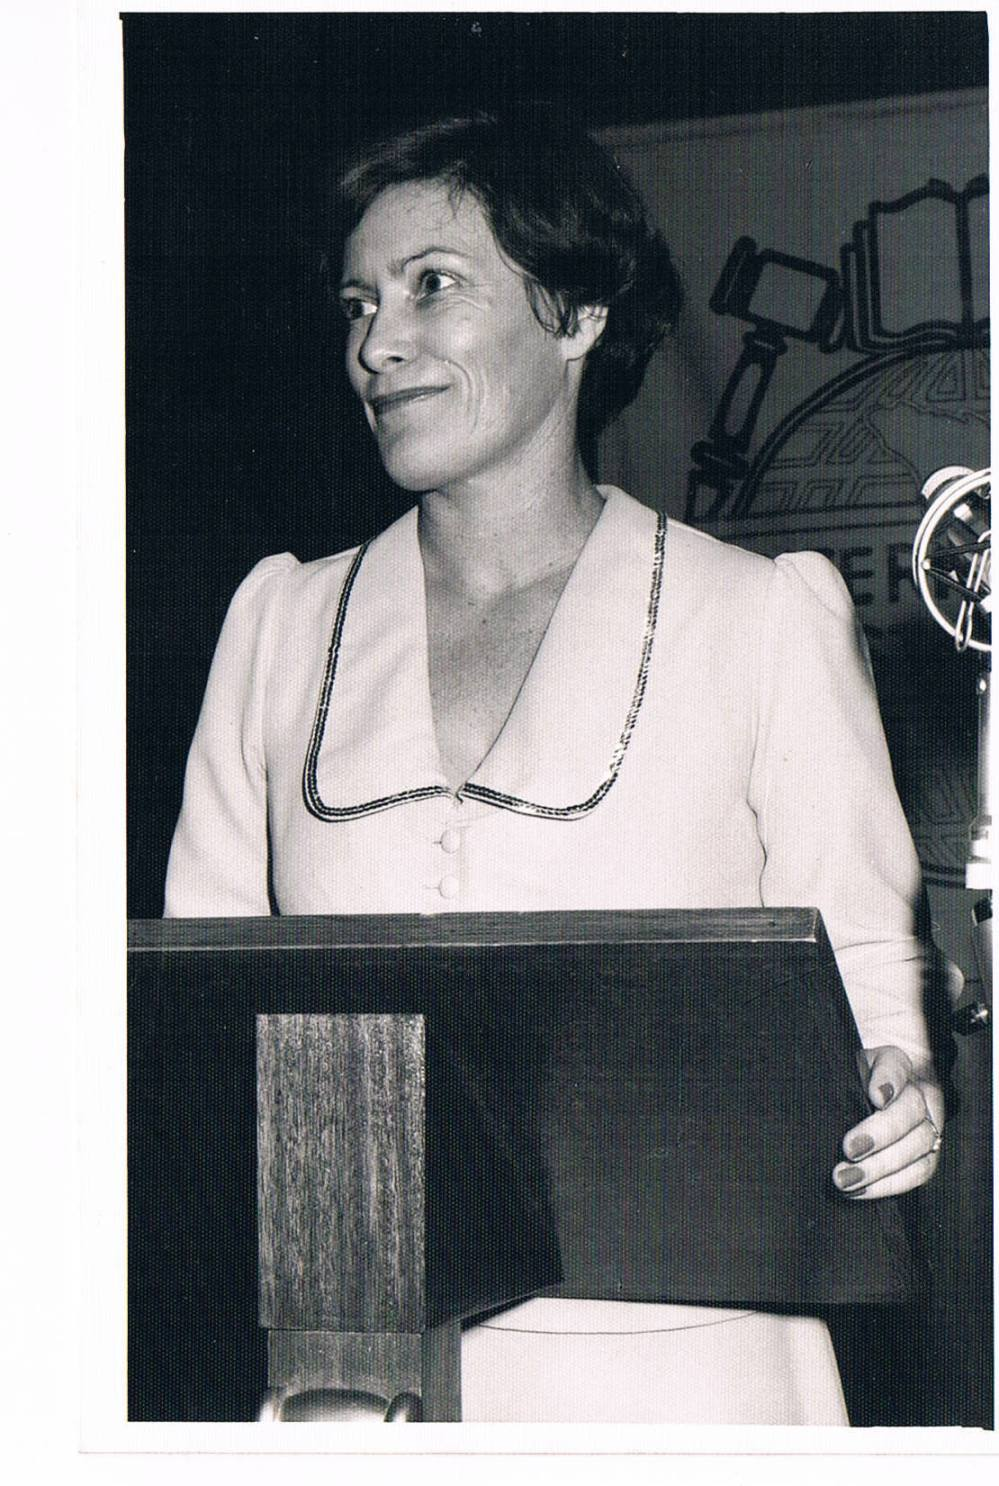 elizabeth-wilson-at-lectern-in-early-days